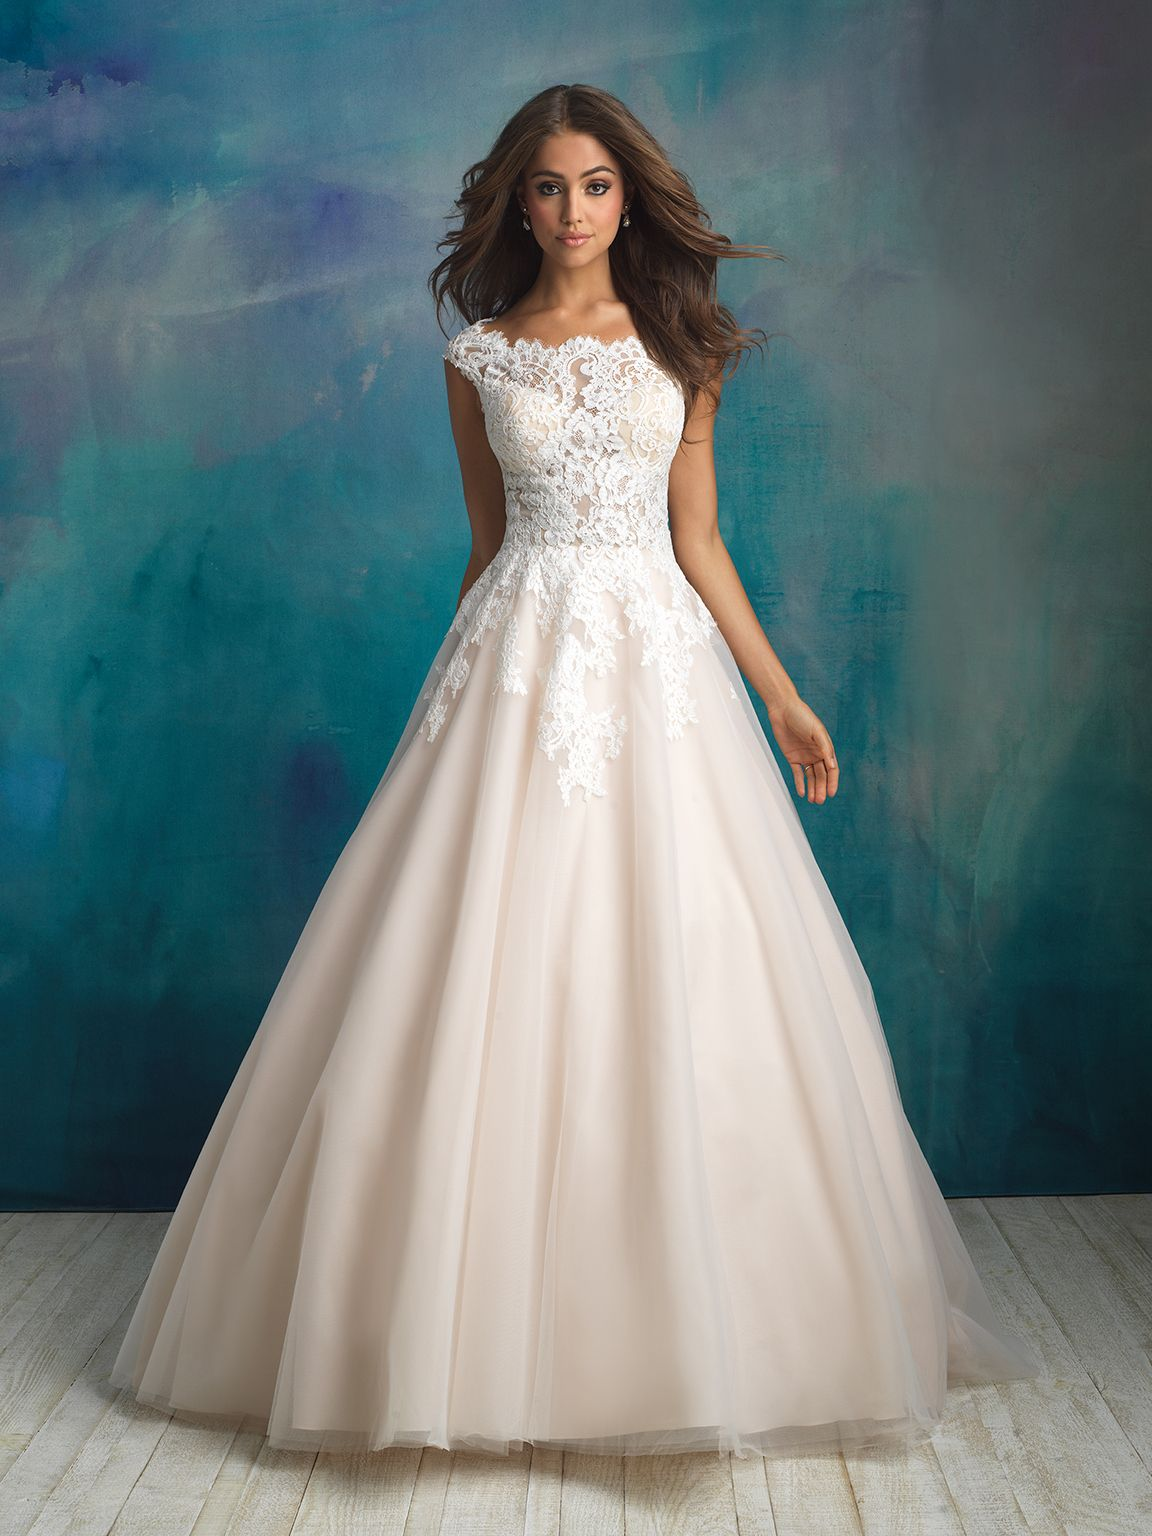 classic ball gown wedding dresses dress for country wedding